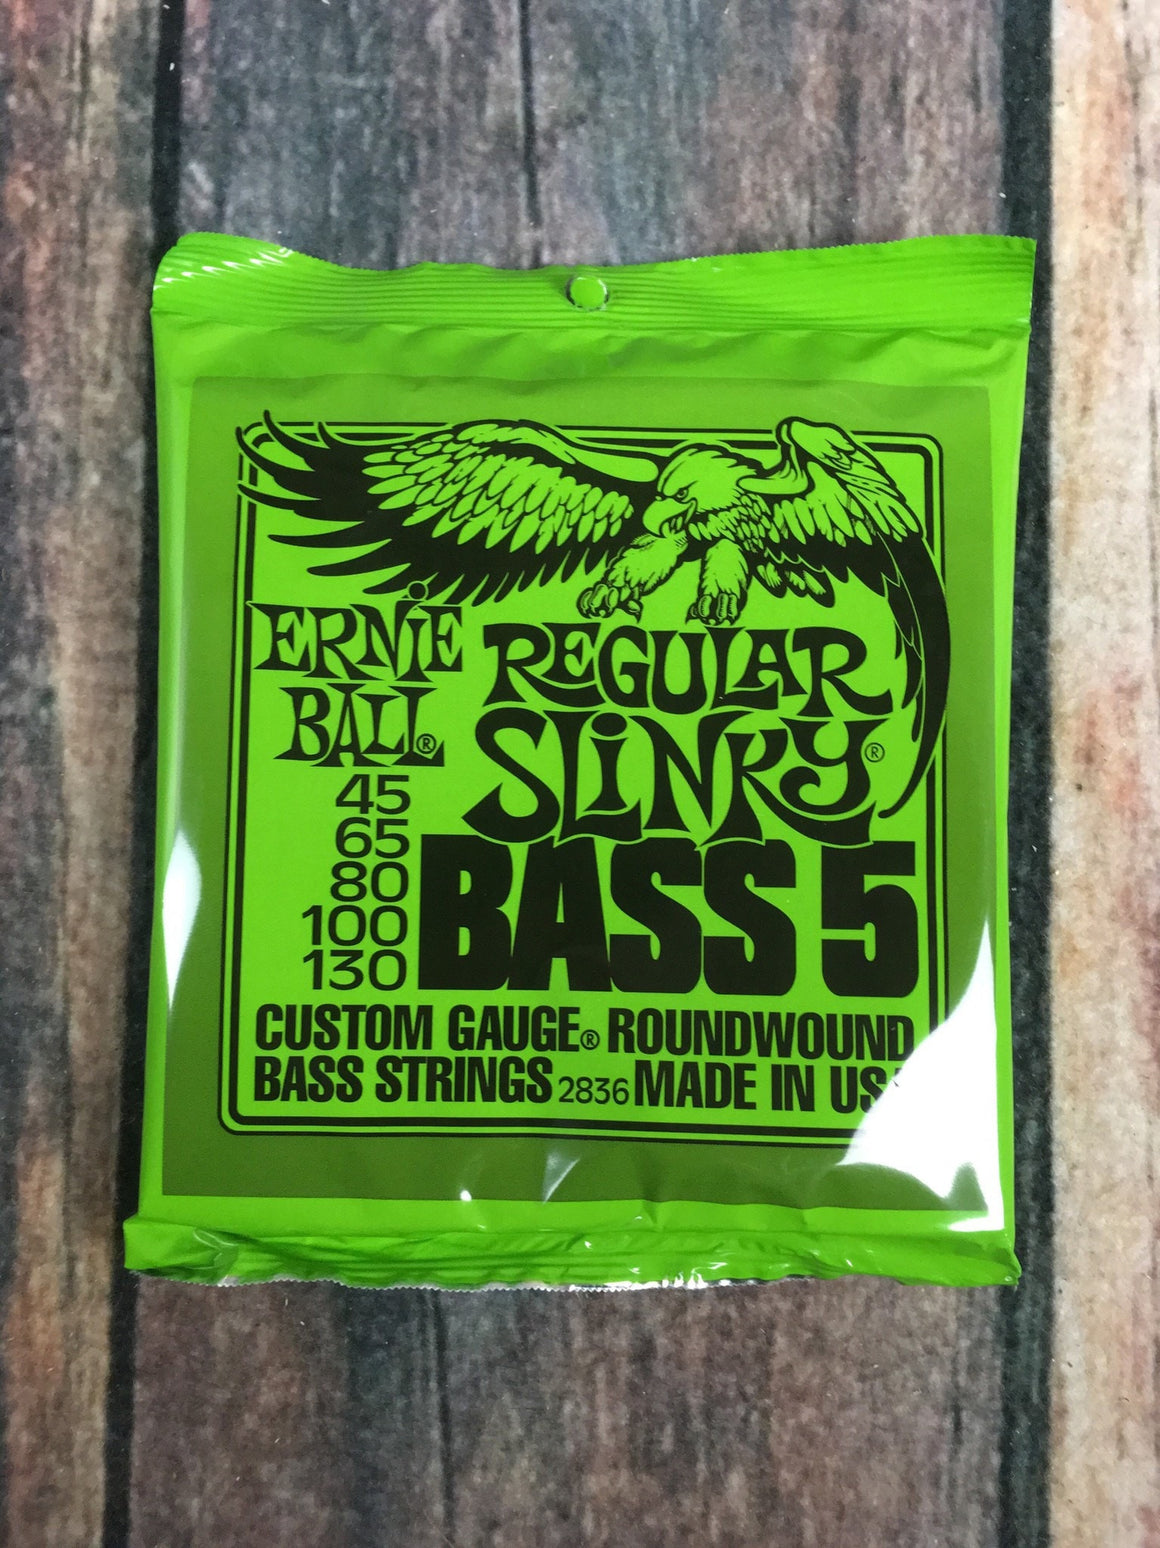 ernie ball Bass Strings Ernie Ball Regular Slinky 5 String Nickel Wound Bass Strings